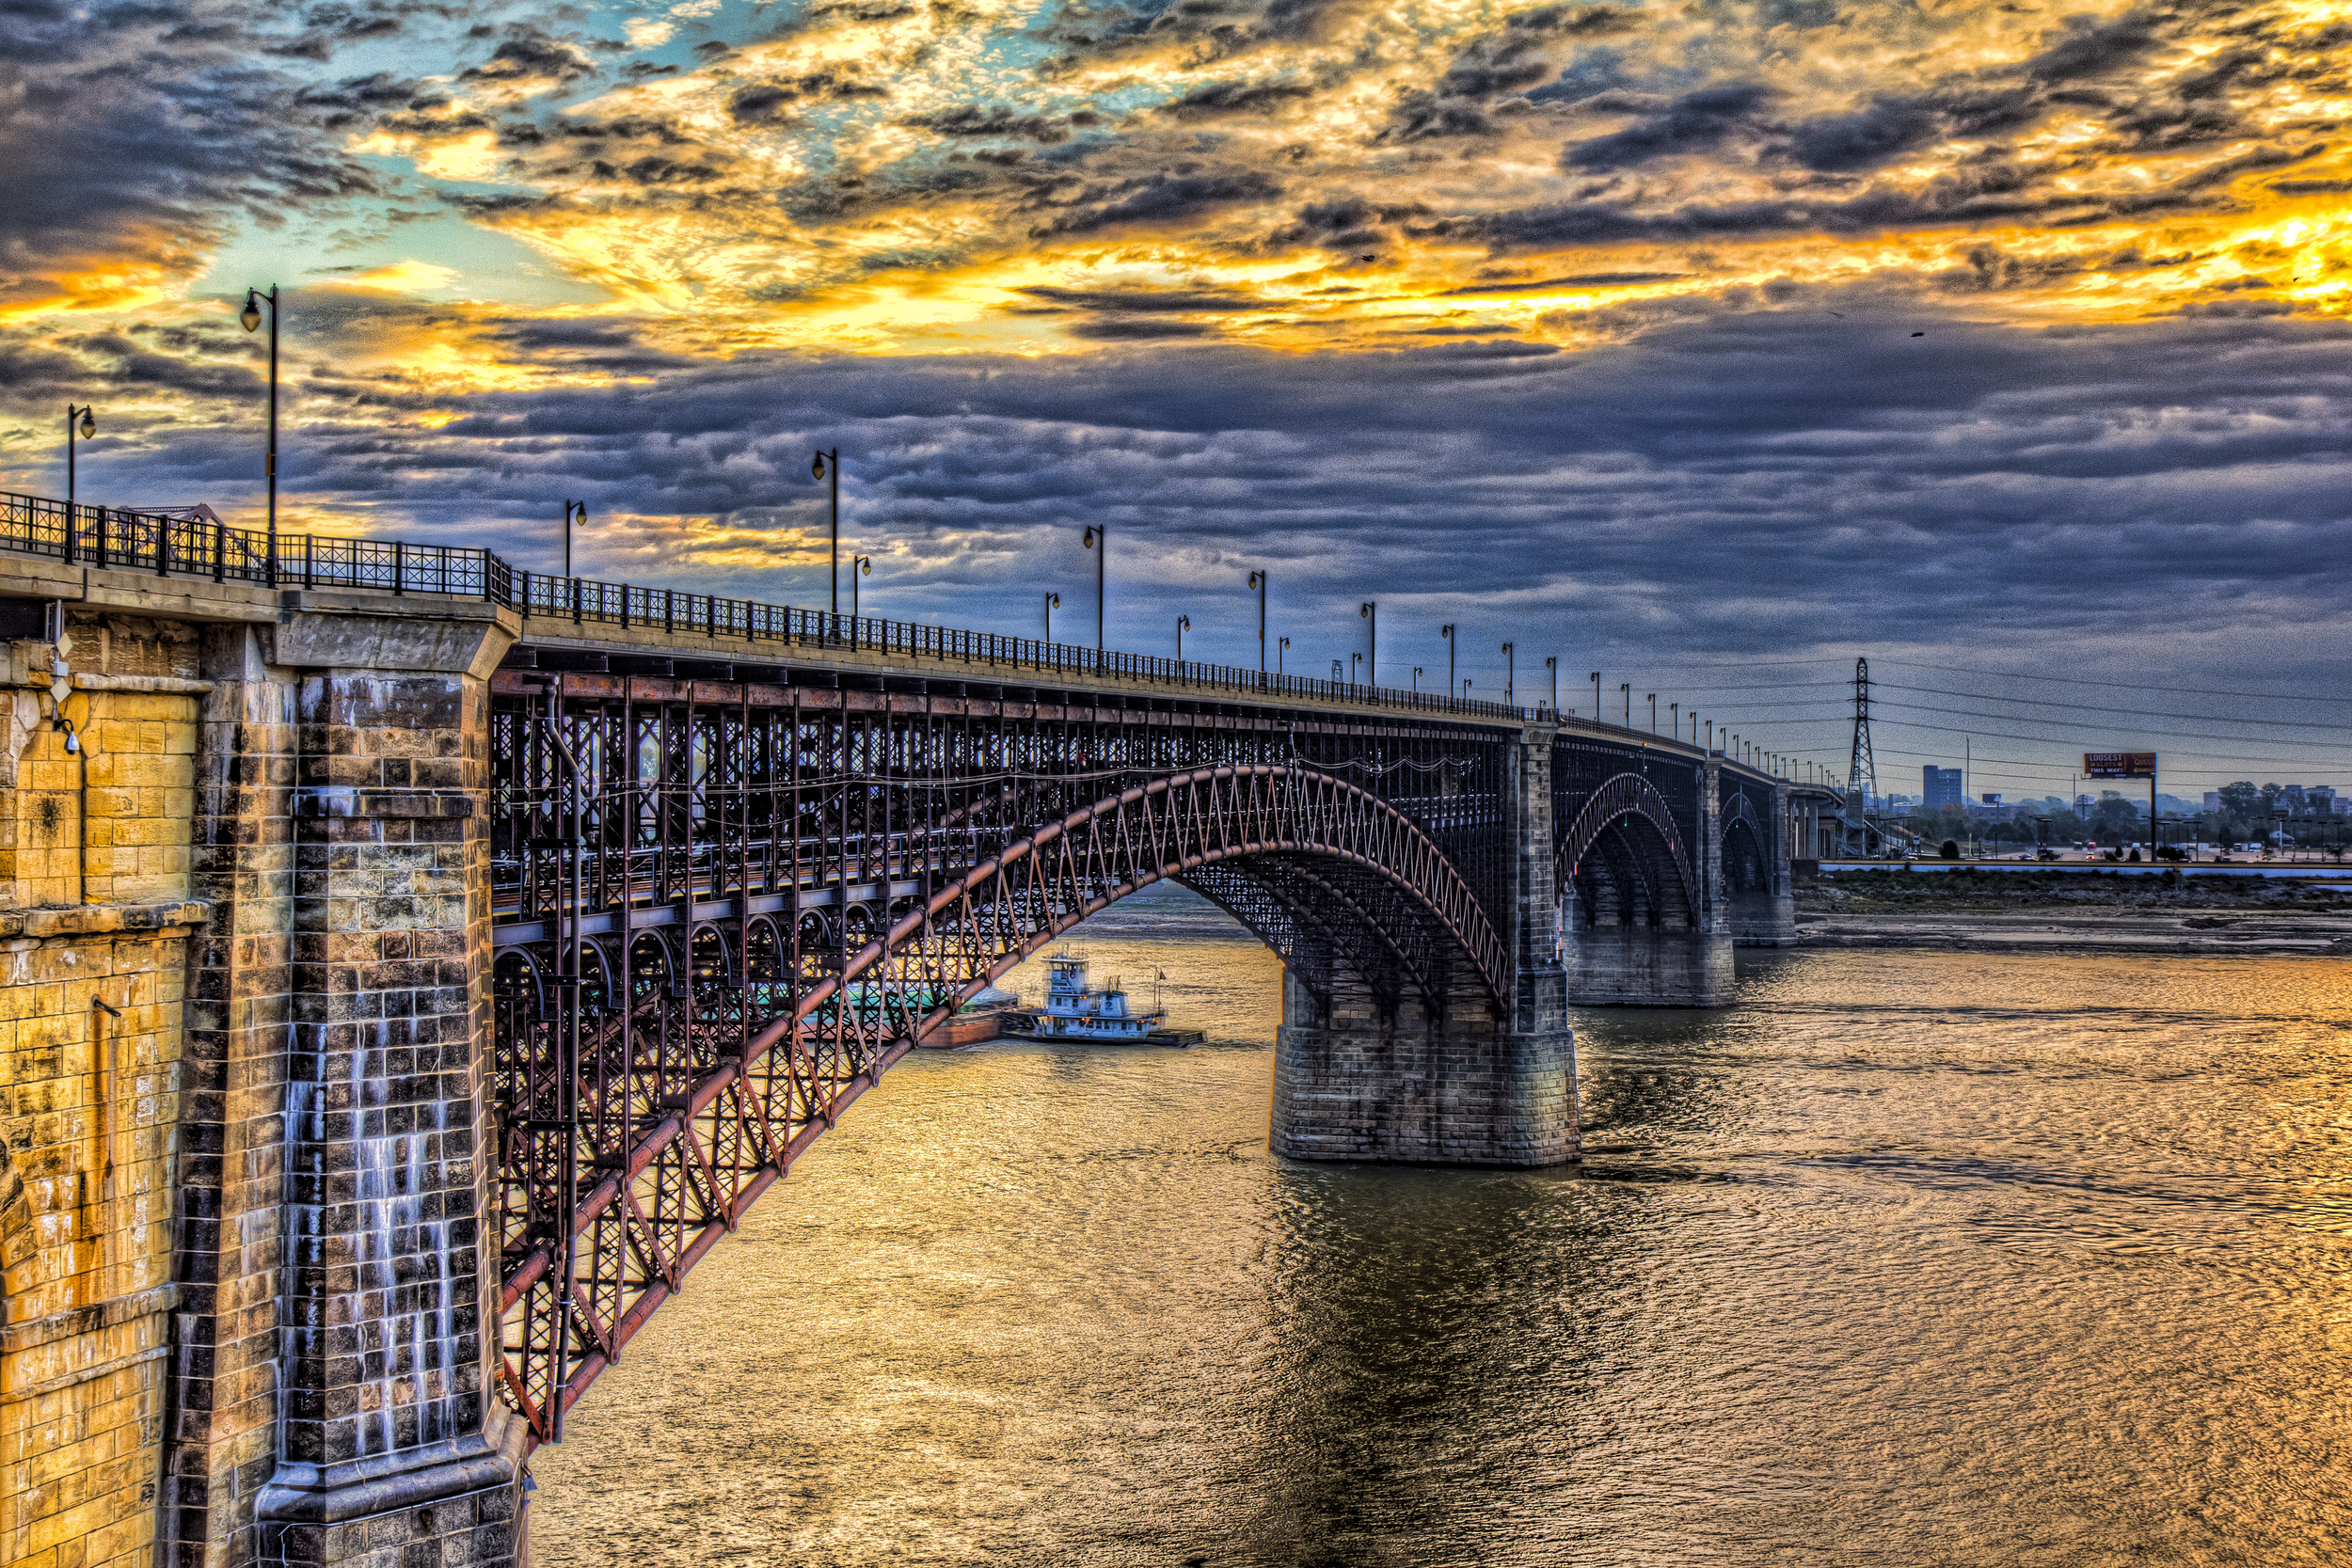 sunrise-on-eads-bridge.jpg